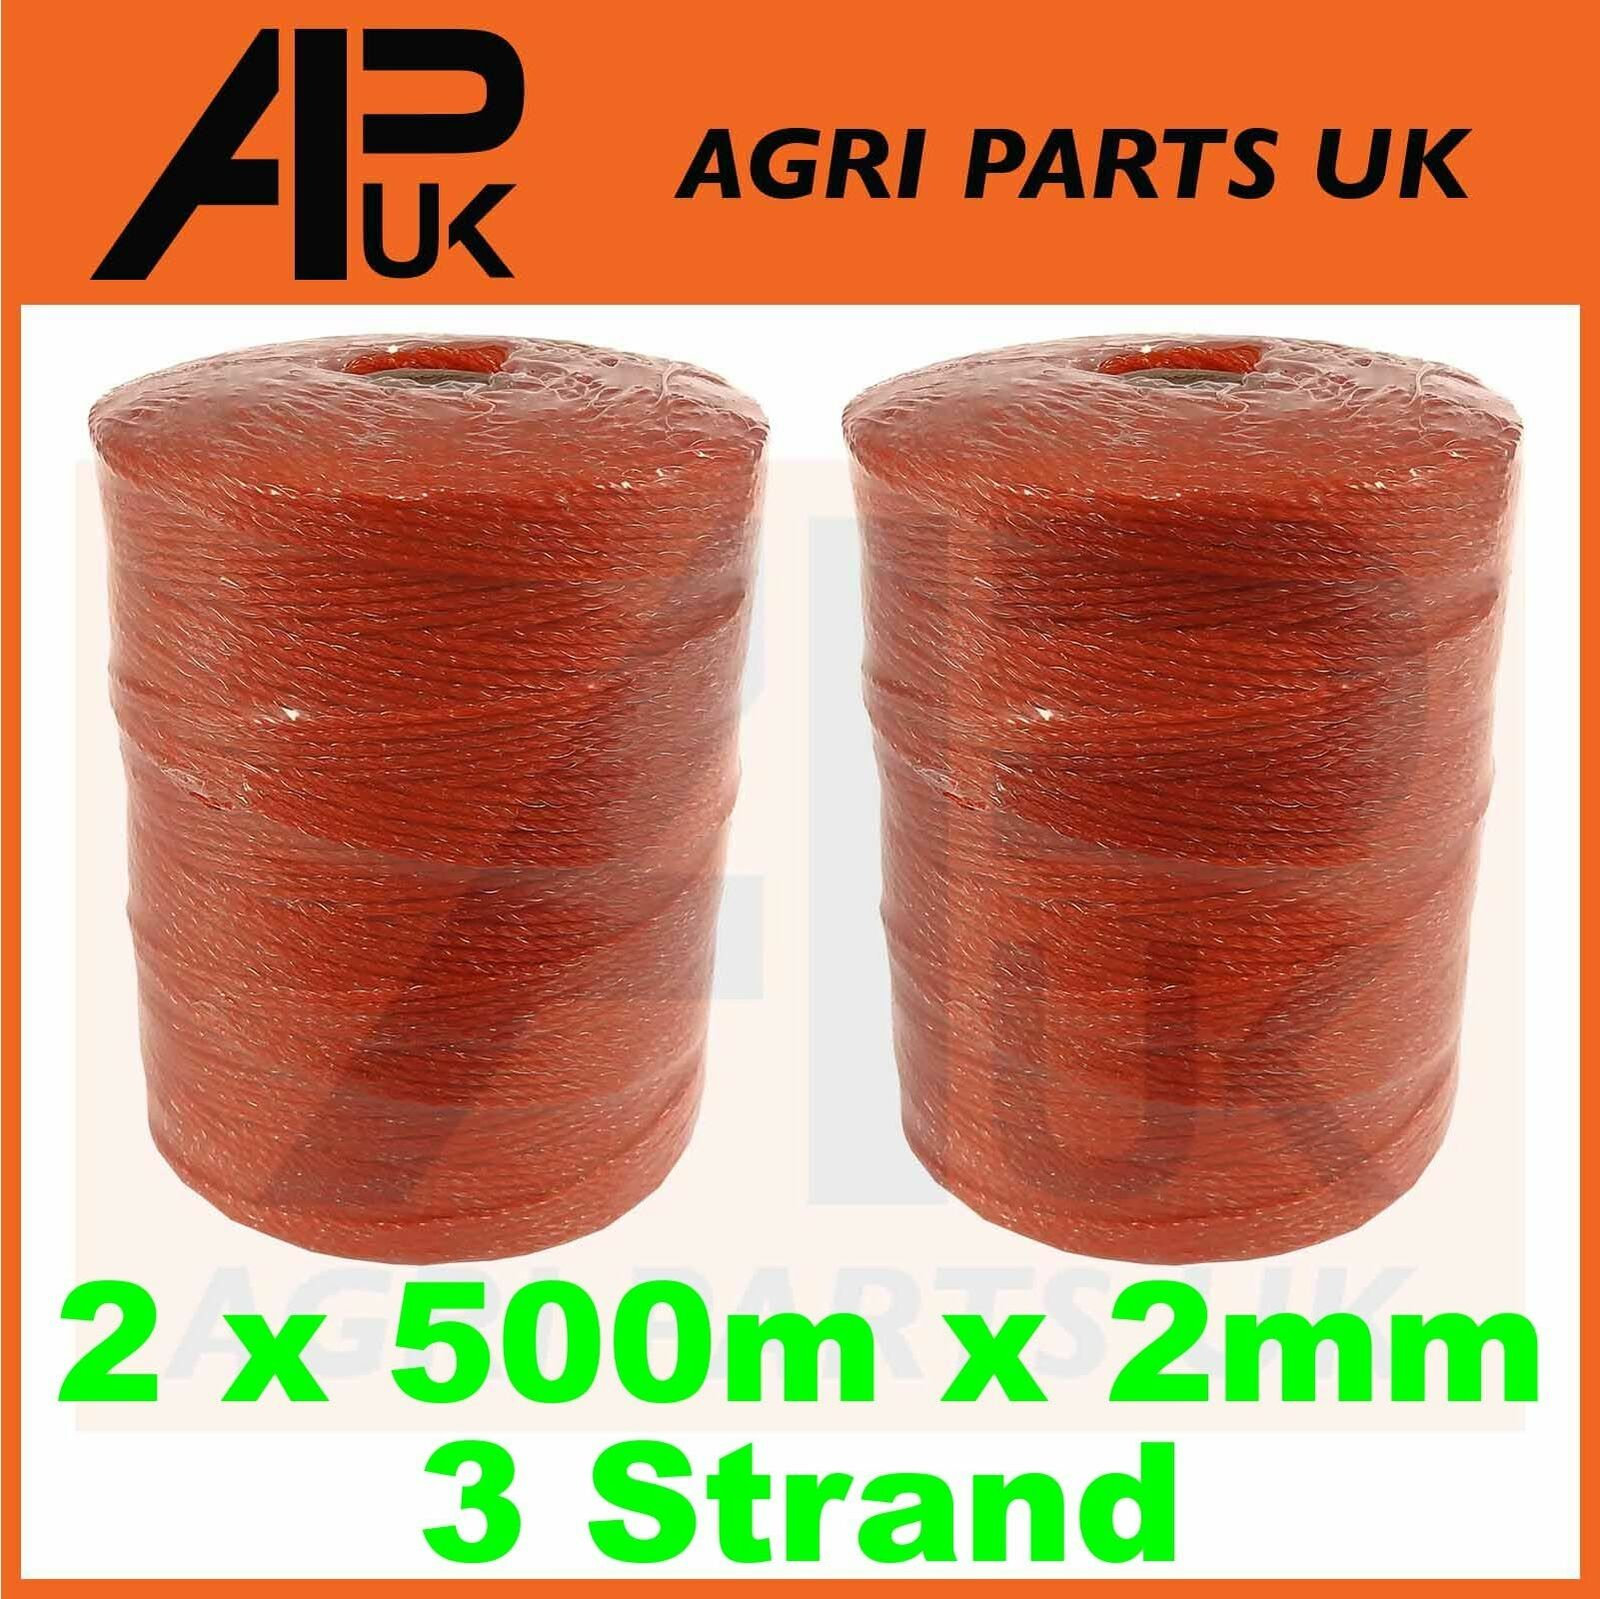 2 Rolls 500m x 2mm 3 Strand Electric Fence Polywire Poly Wire Fencing Energiser